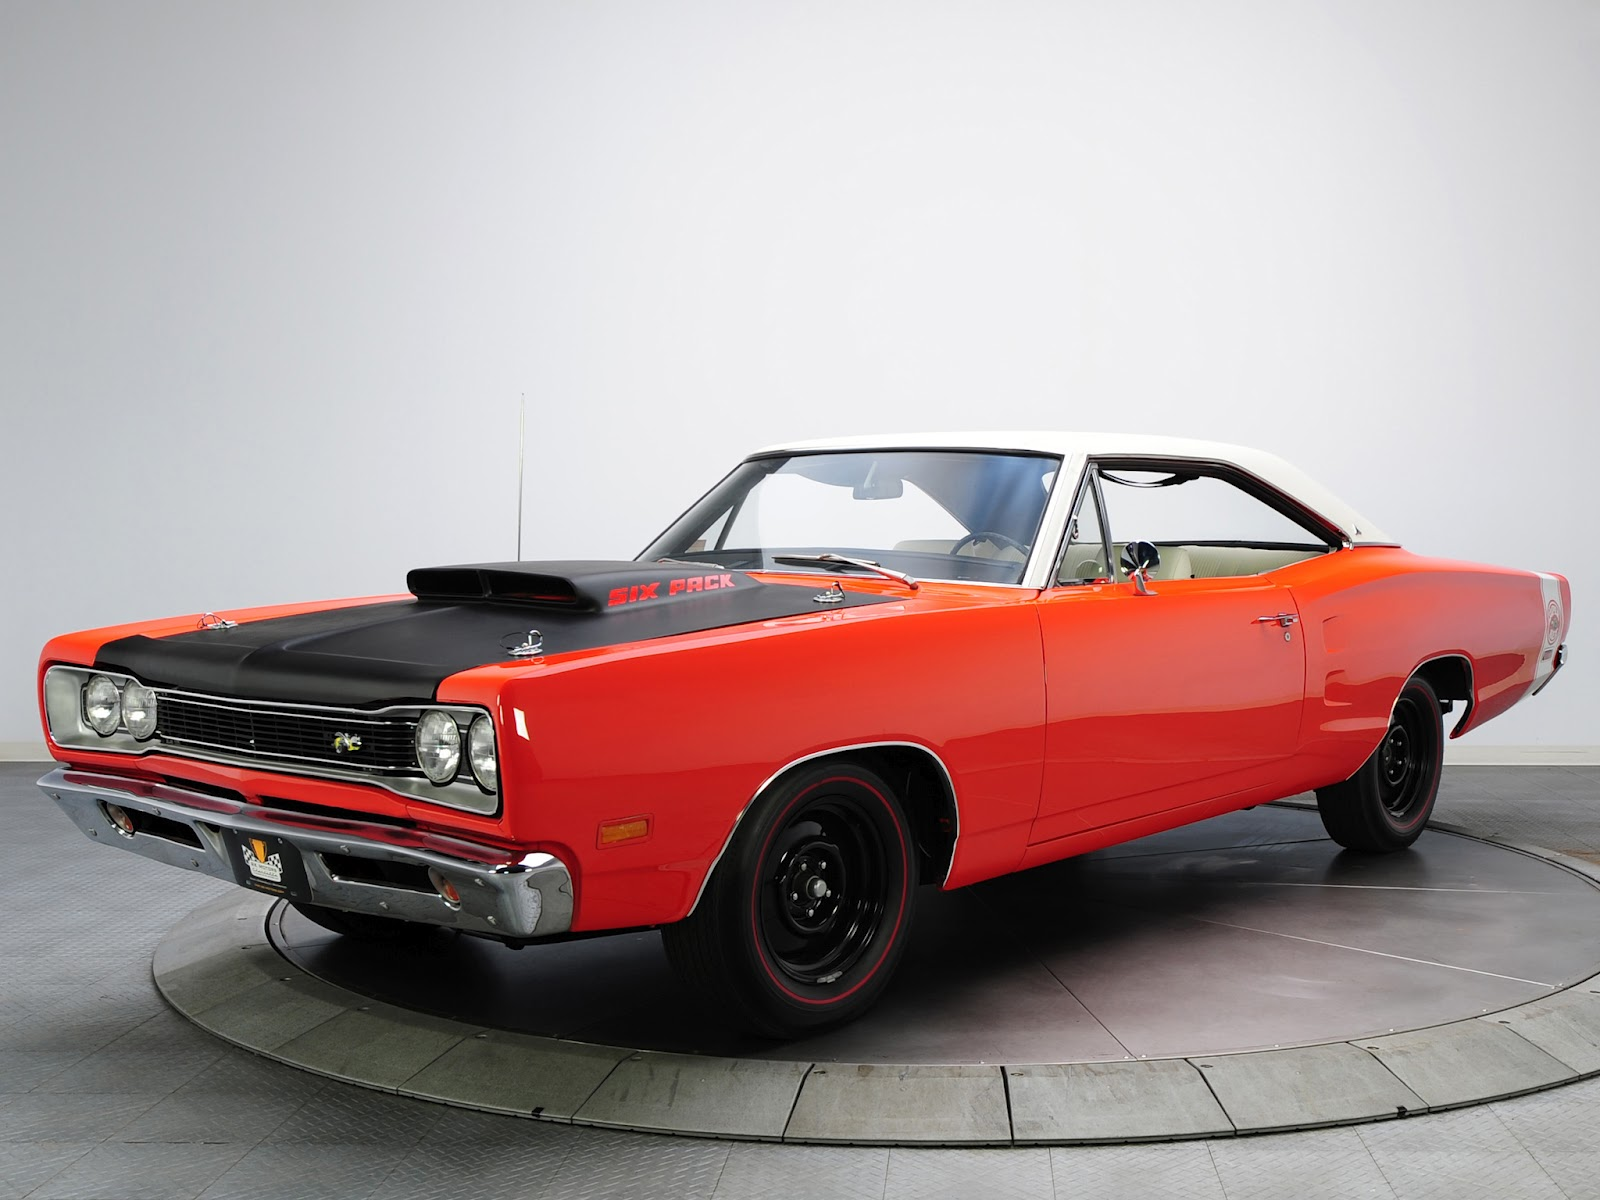 67 Coro  Wiring Diagram likewise 1960 1975 Dodge 2 Door Cars Pictures together with 69 Coro  Wiring Diagram in addition 1969 Dodge Coro  Rt Hemi likewise Wiring Diagram For 1968 Dodge Coro. on 1969 dodge coronet super bee wiring diagram